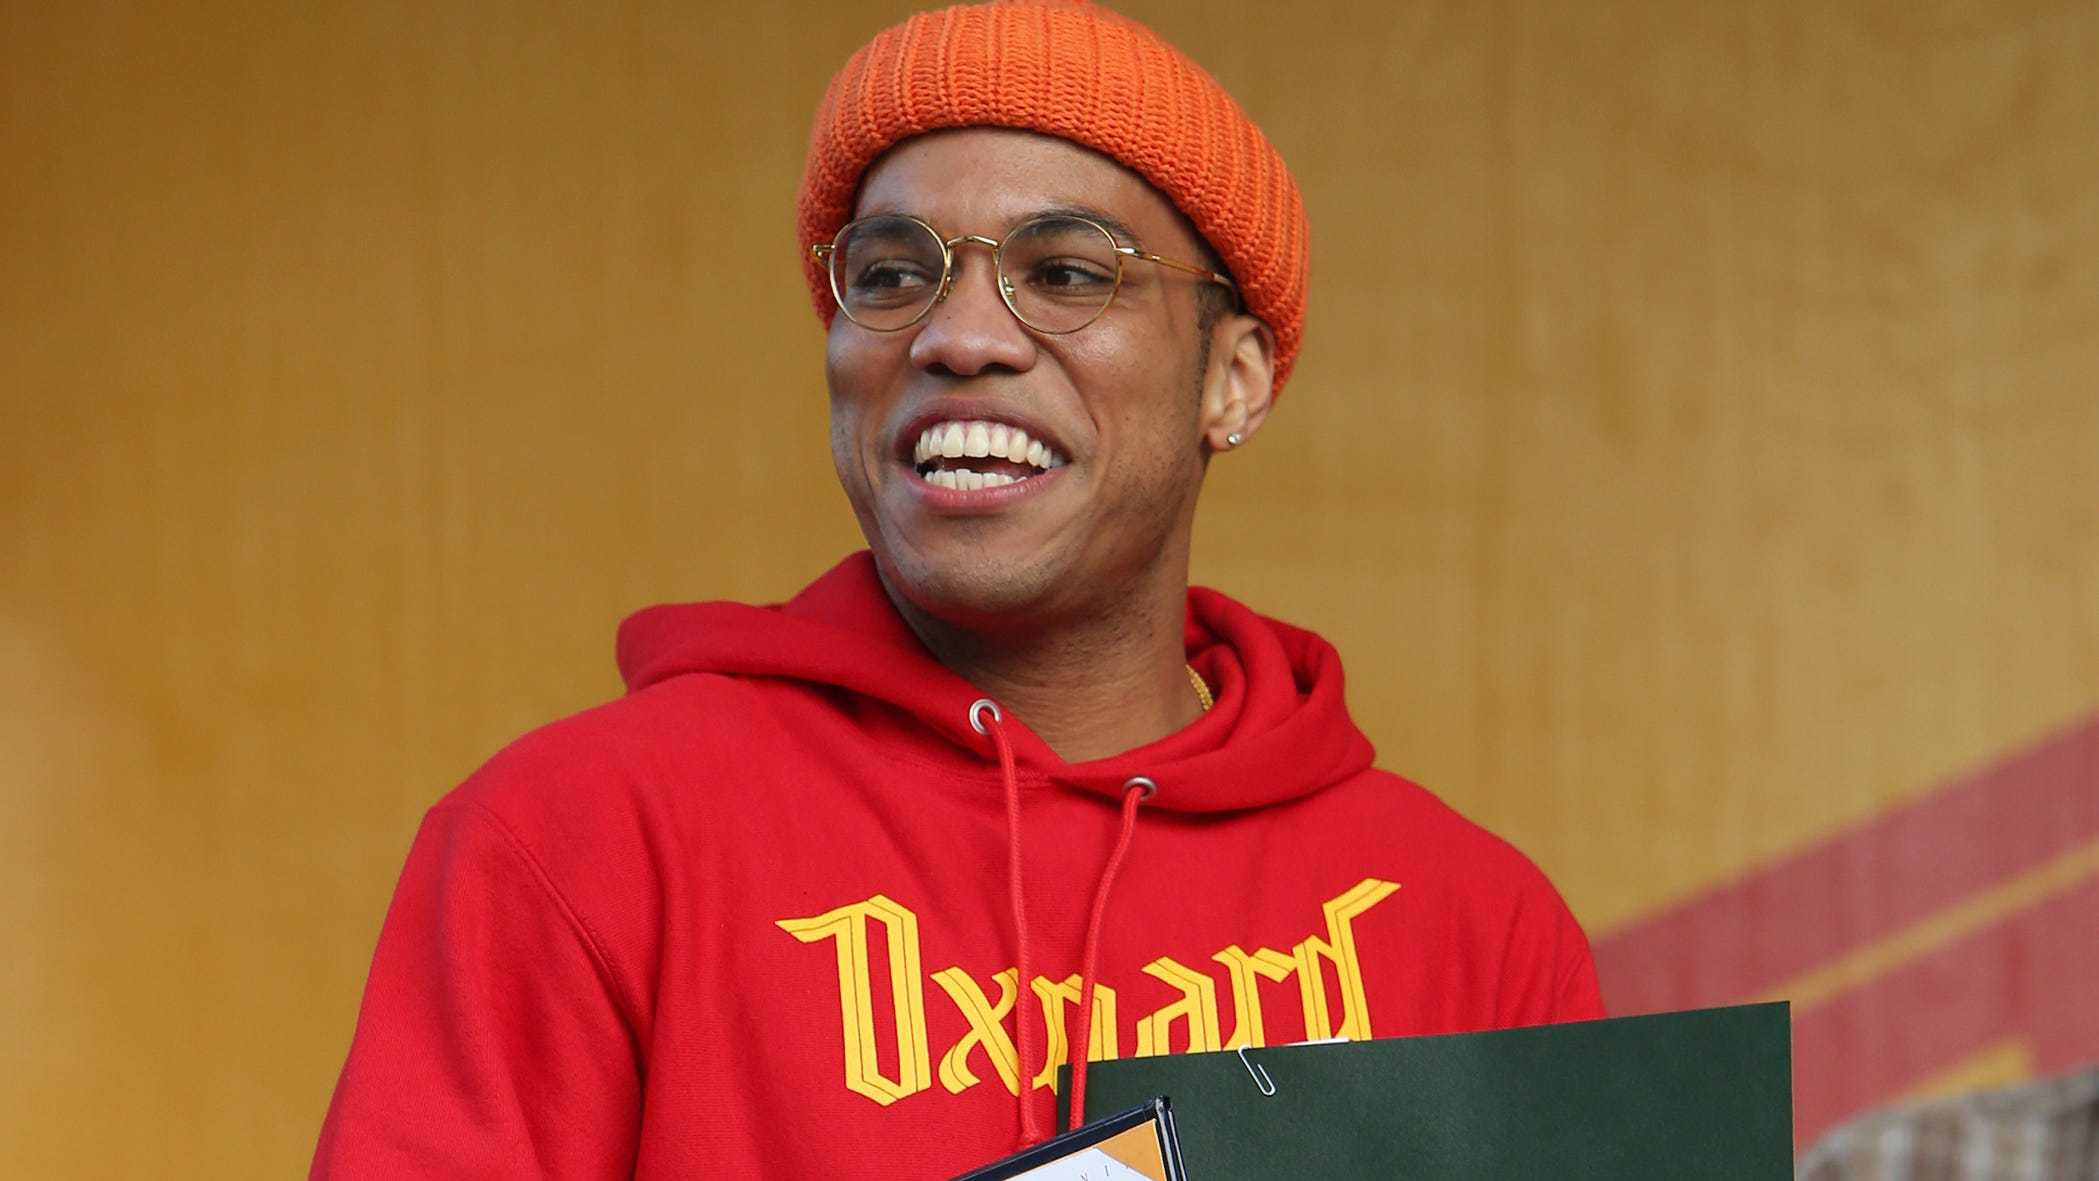 """Rapper and Oxnard native Anderson .Paak is all smiles as he holds a plaque with the keys to the city presented to him by Oxnard Mayor Tim Flynn, a certificate of recognition from state Sen. Hannah-Beth Jackson, D-Santa Barbara, and a letter of resolution from Ventura County Supervisor John Zaragoza declaring November 17, 2018, """"Anderson .Paak Day."""""""